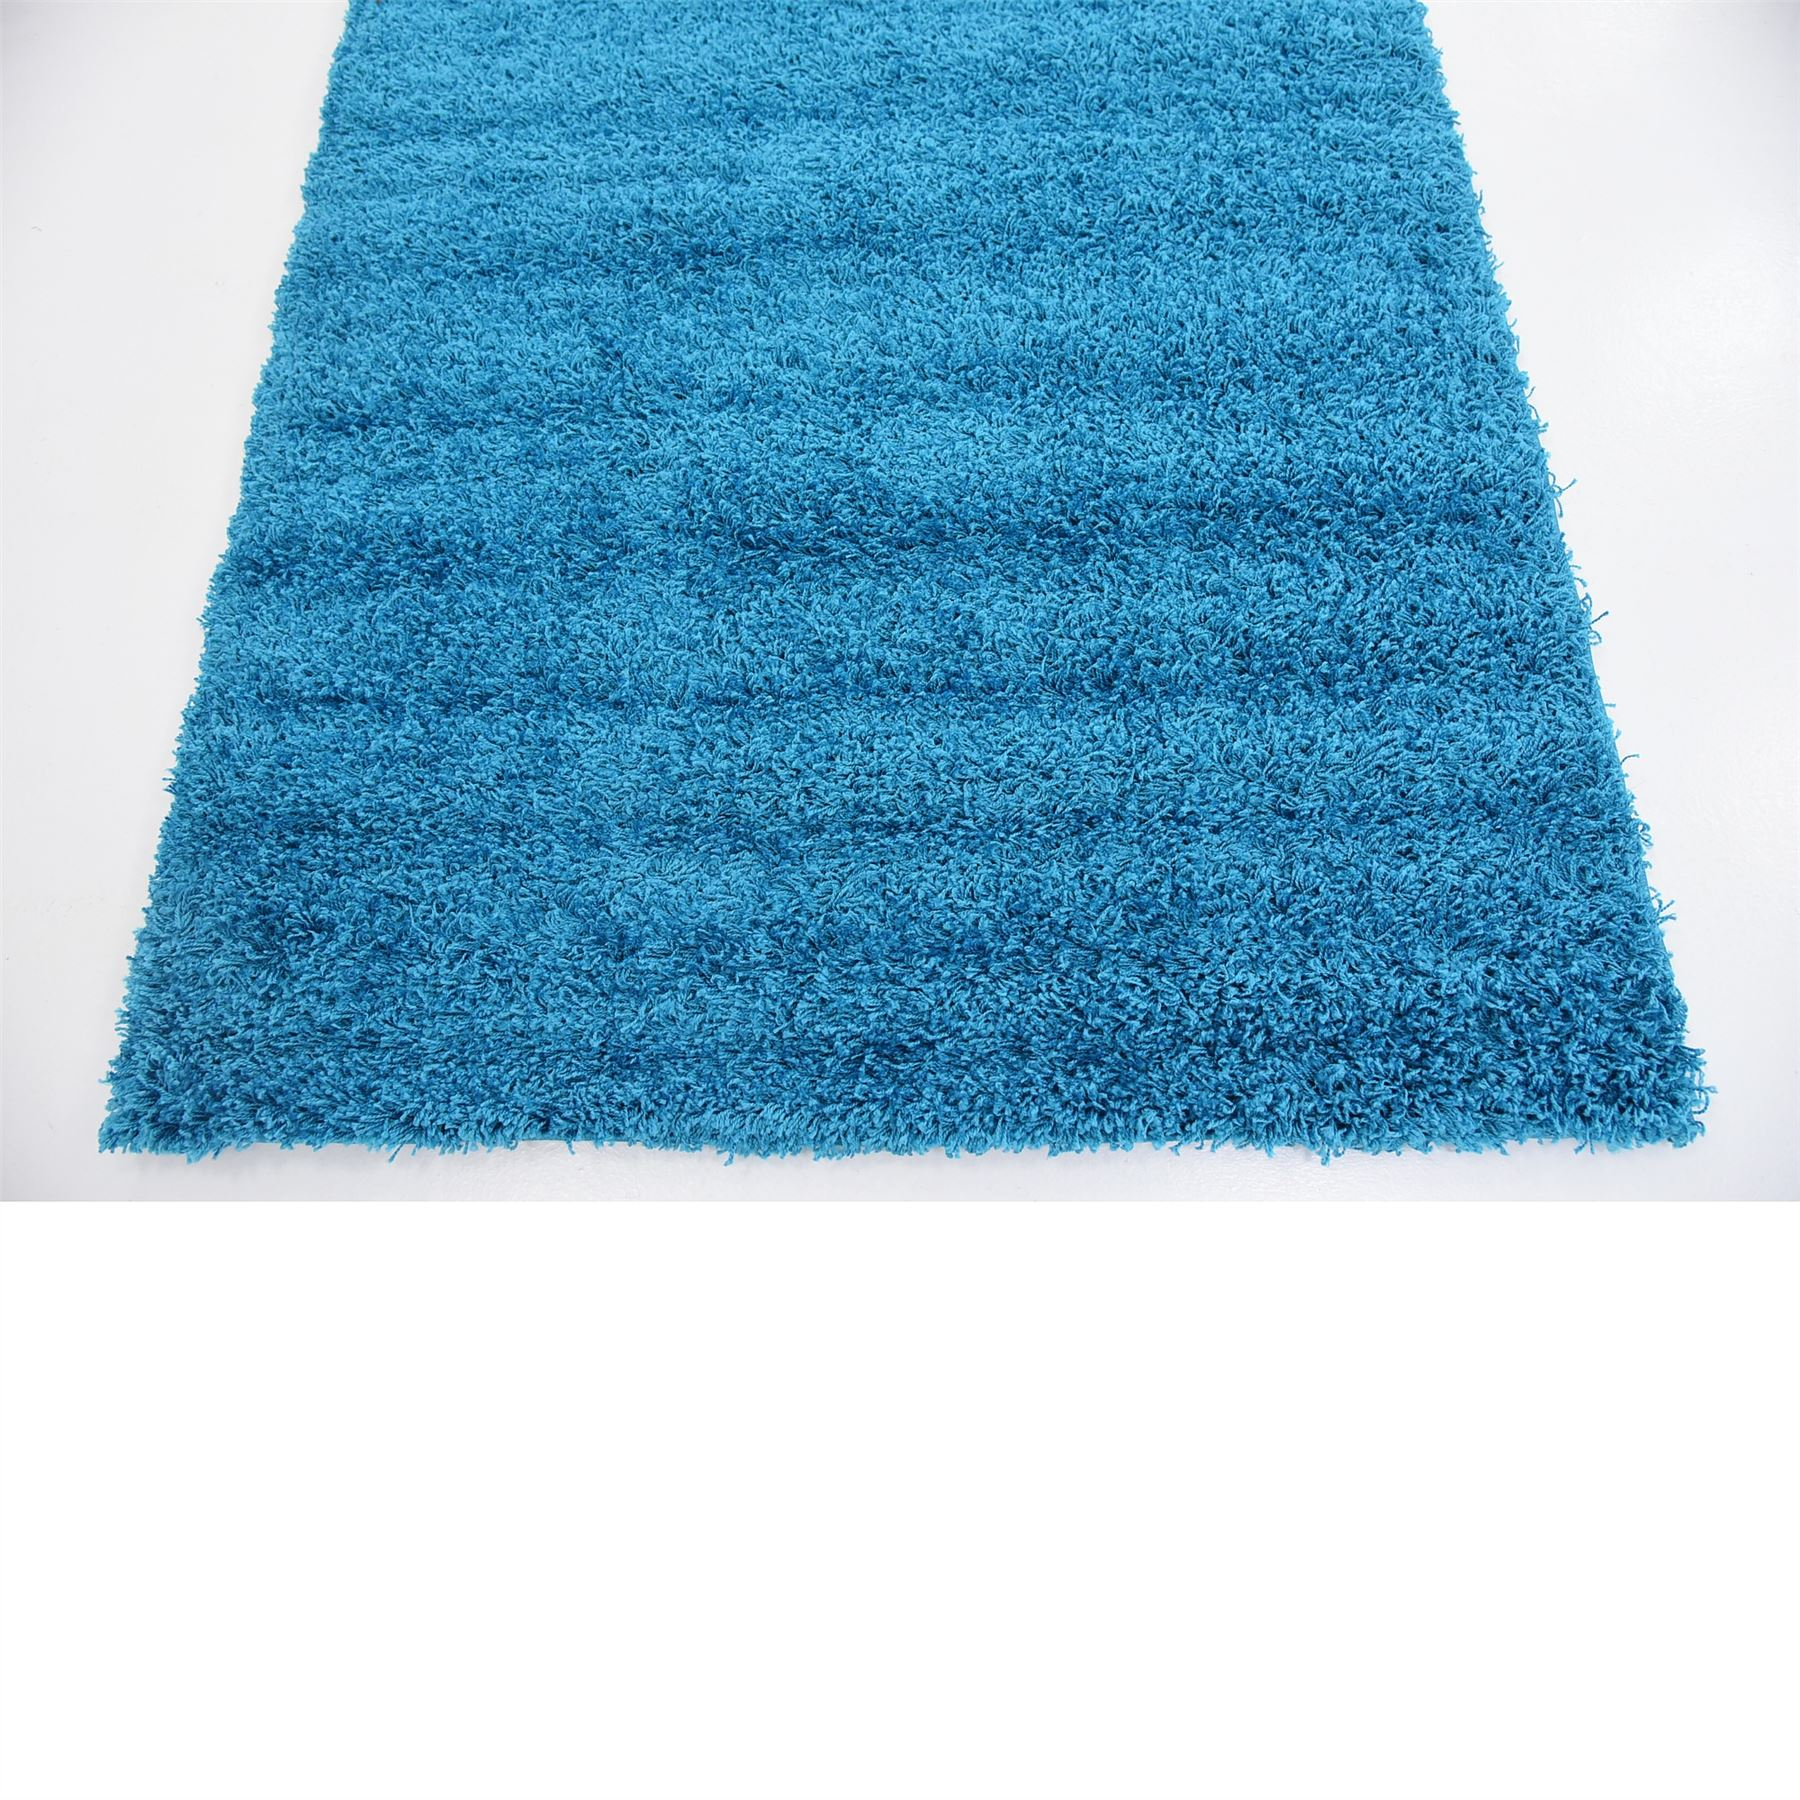 Red And Turquoise Rug Area Sophisticated Awesome Rugs In: Turquoise 4' X 6' Solid Shag Modern Floor Carpet Area